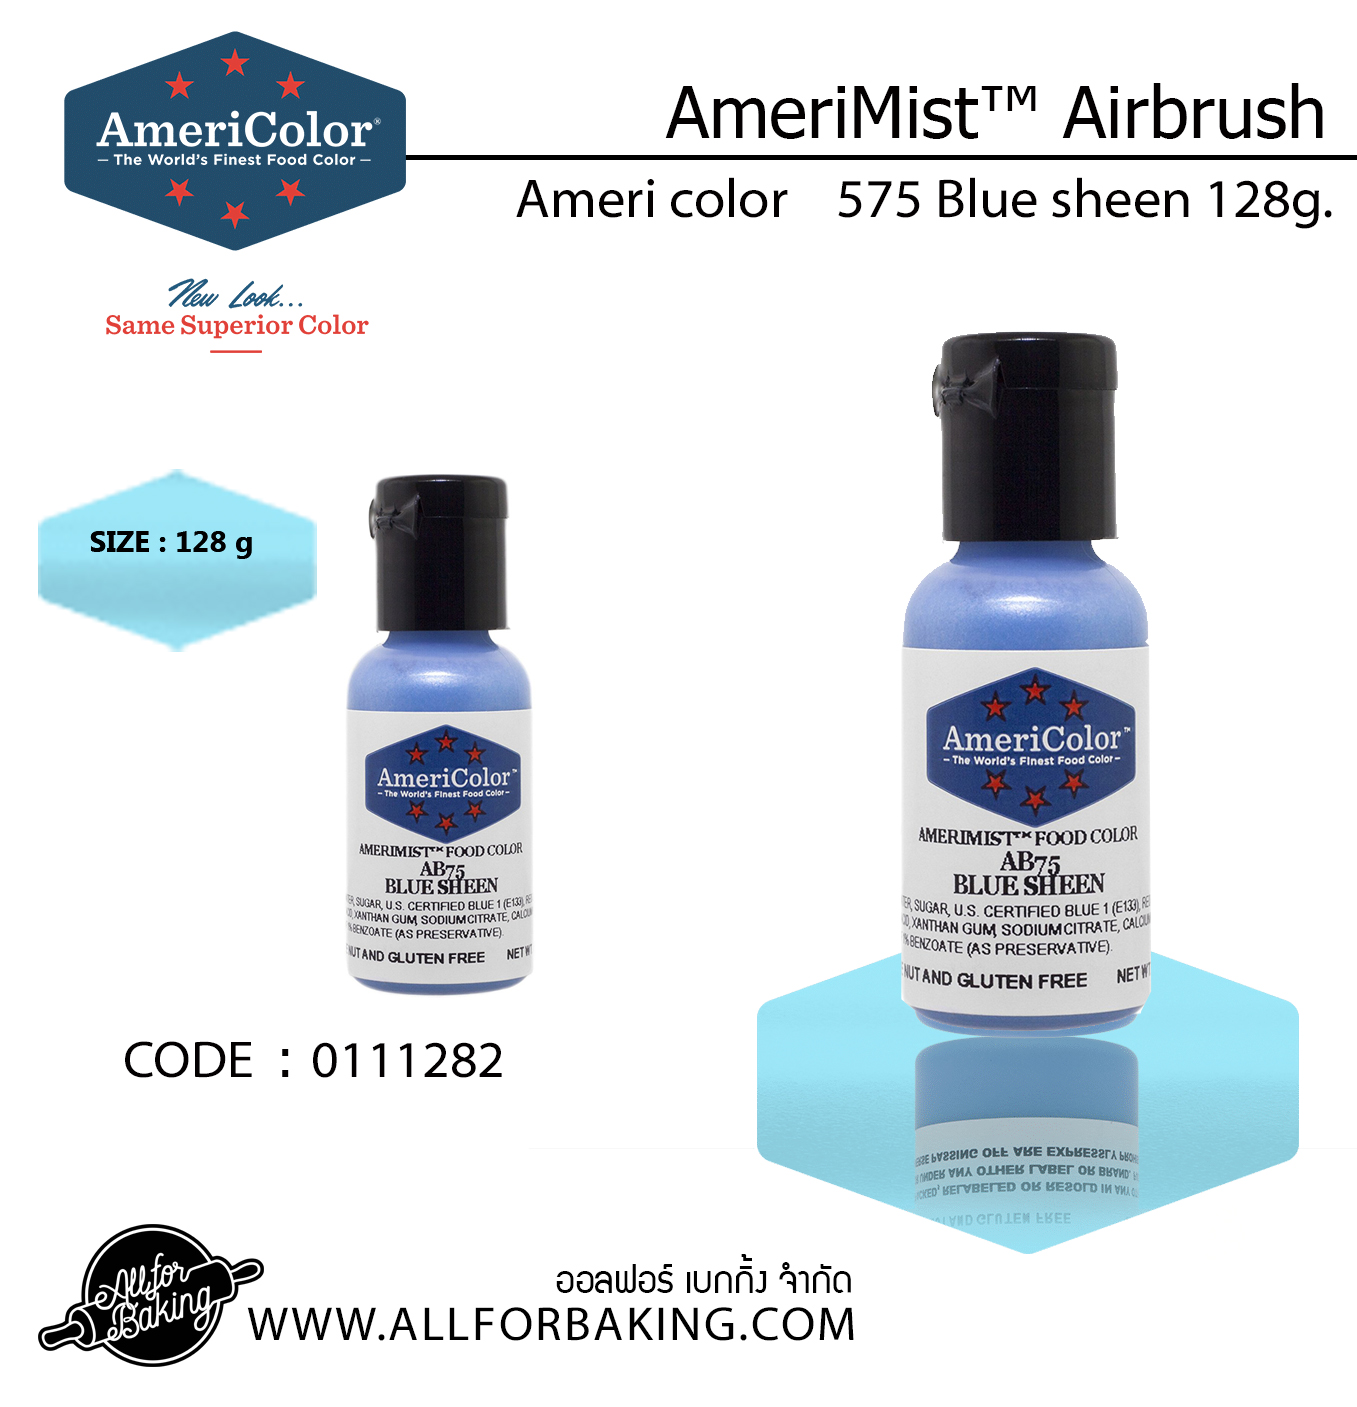 Ameri color 575 Blue sheen 128 g (128 g)